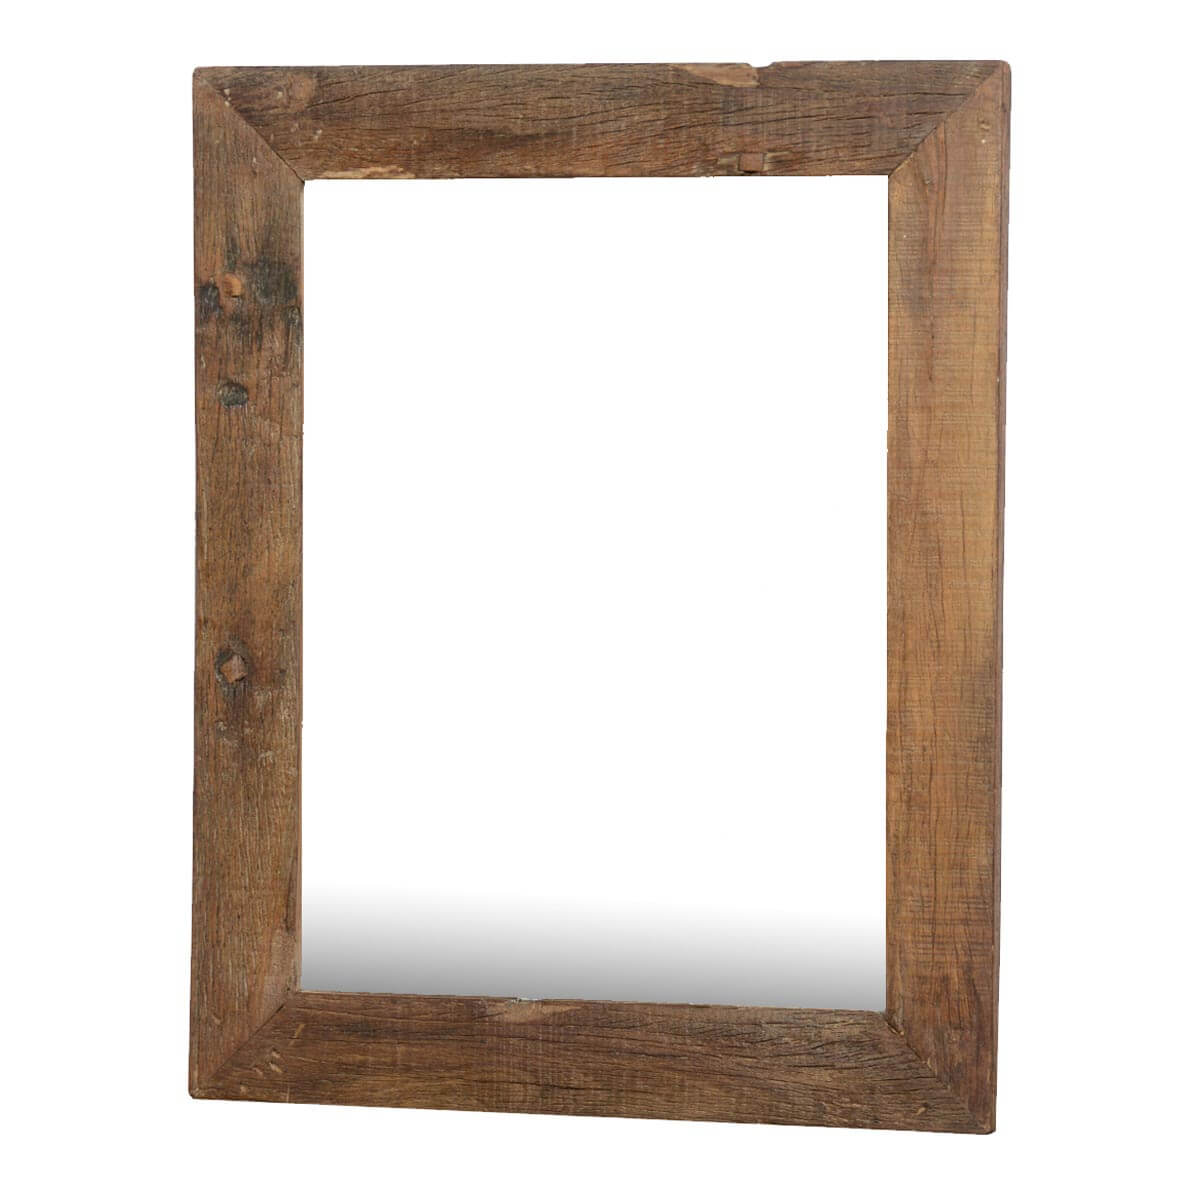 appalachian rustic large reclaimed wood wall mirror w simple frame